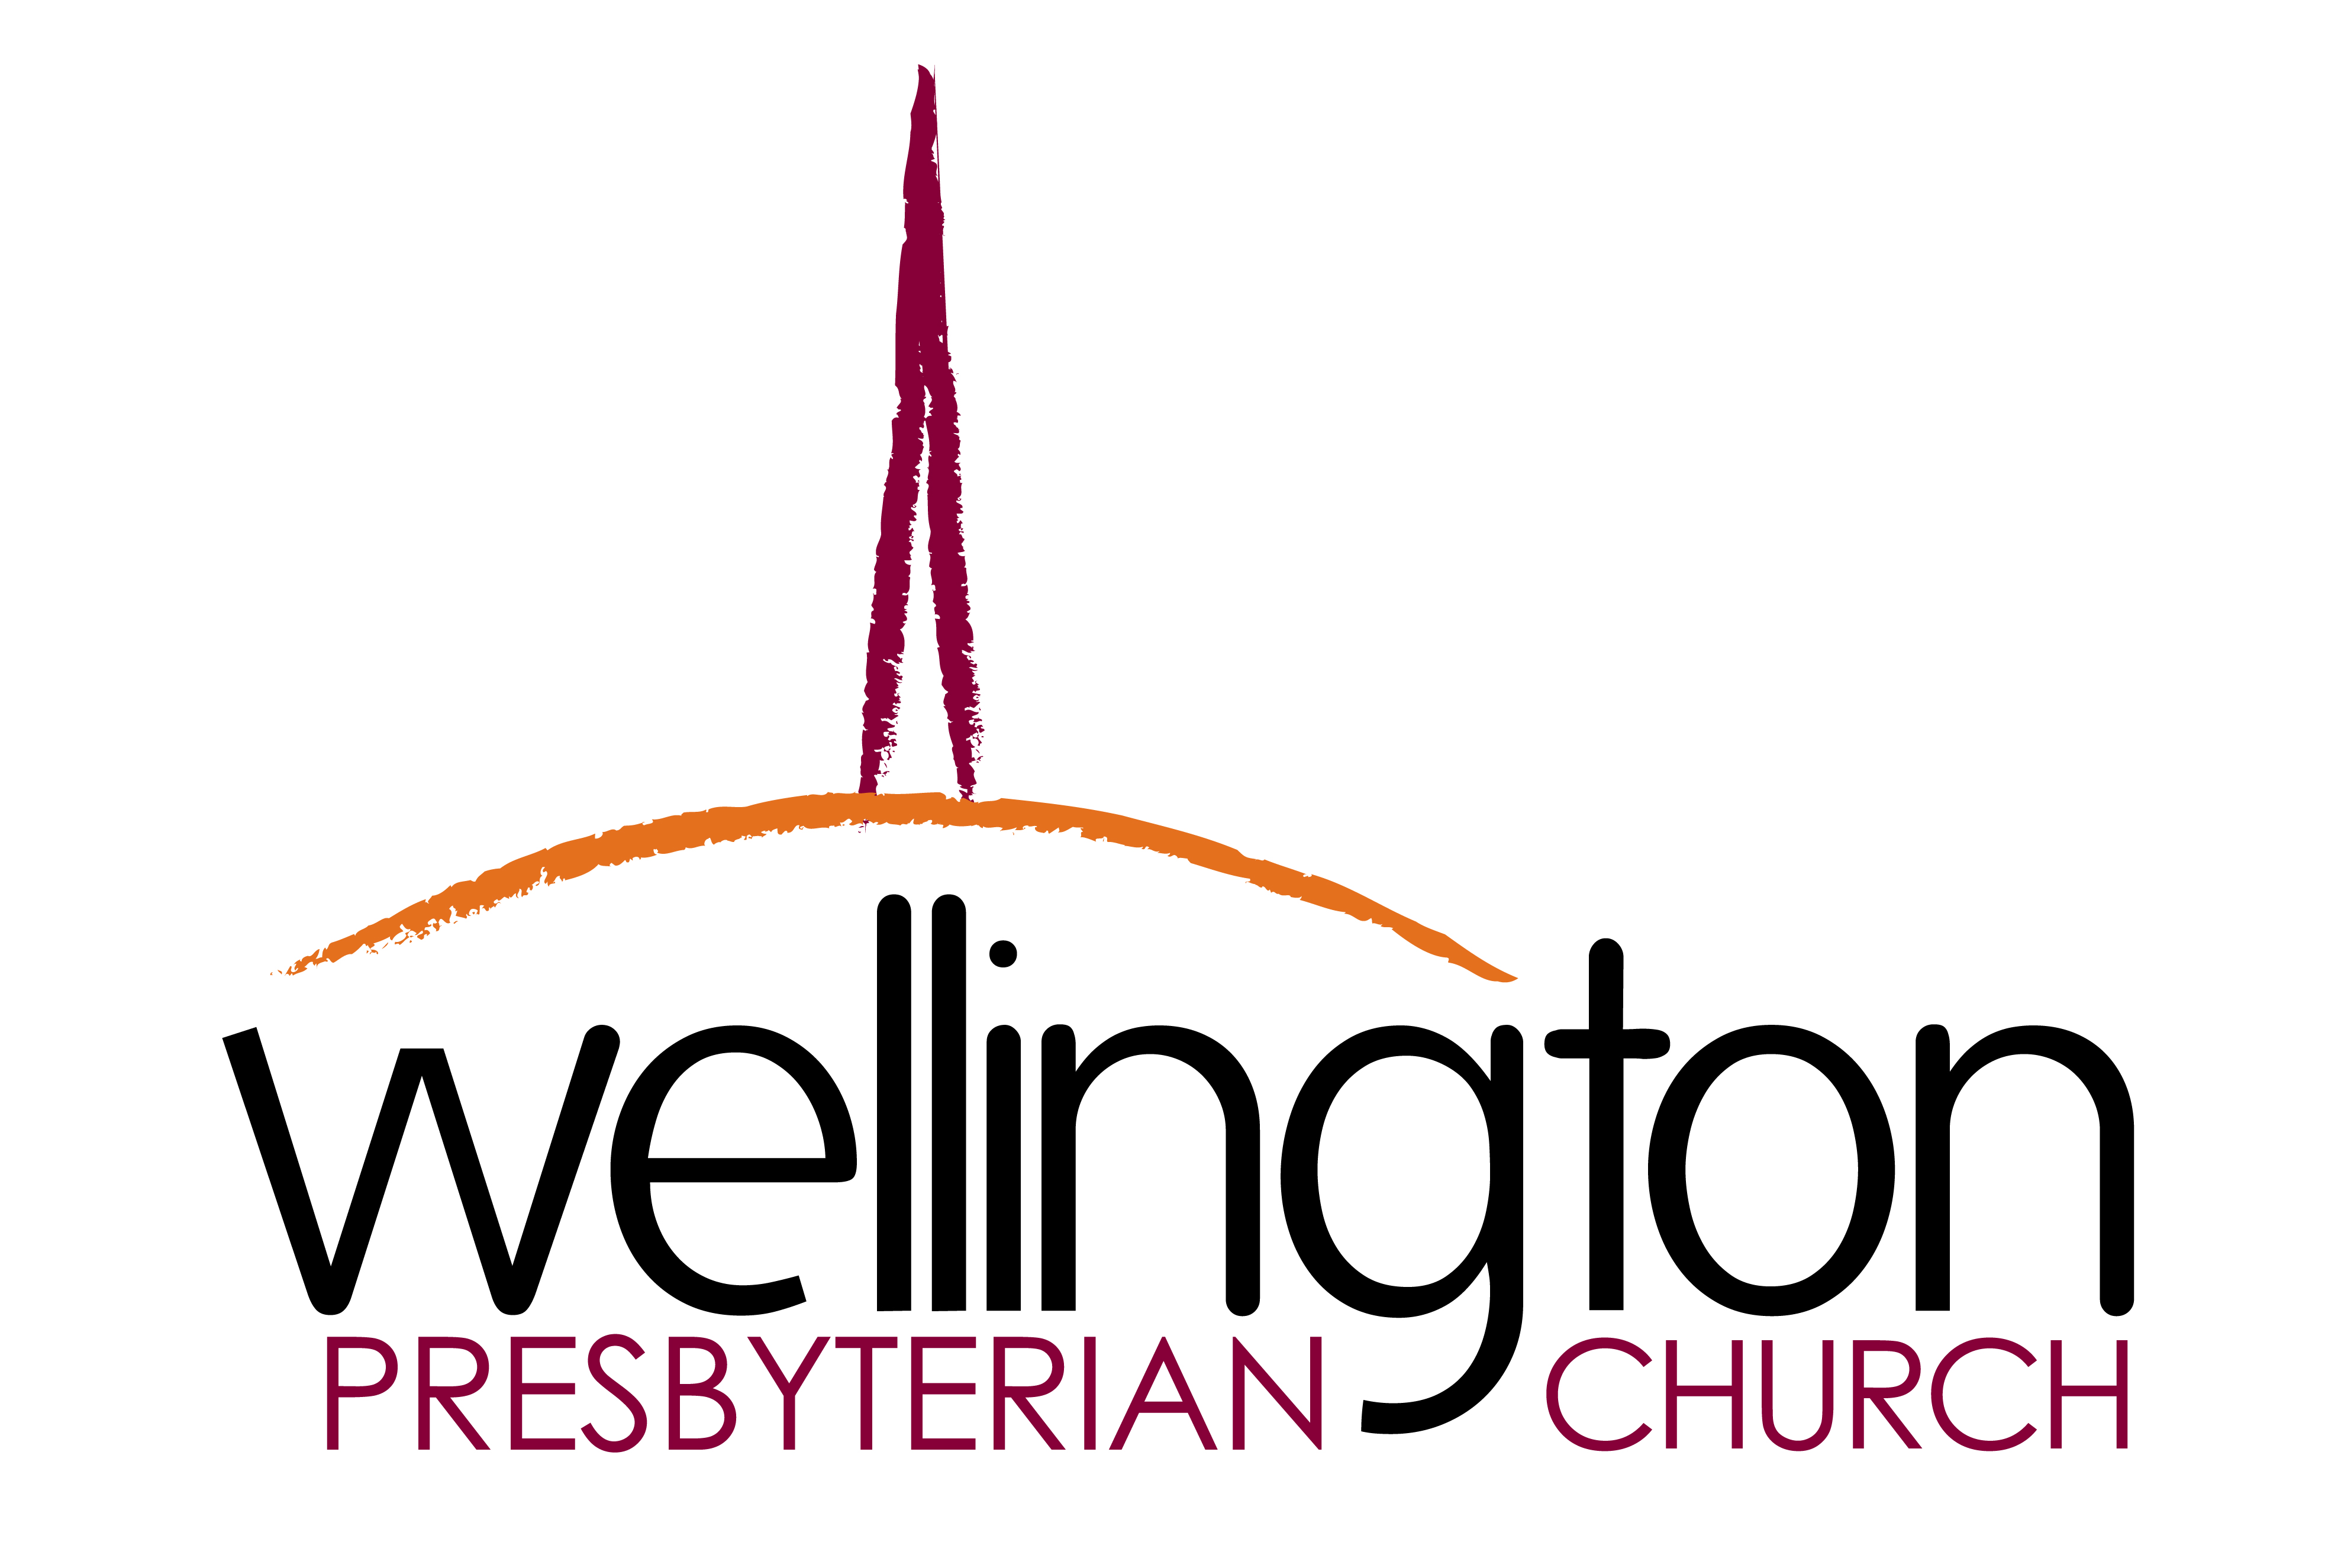 Wellington Presbyterian Church